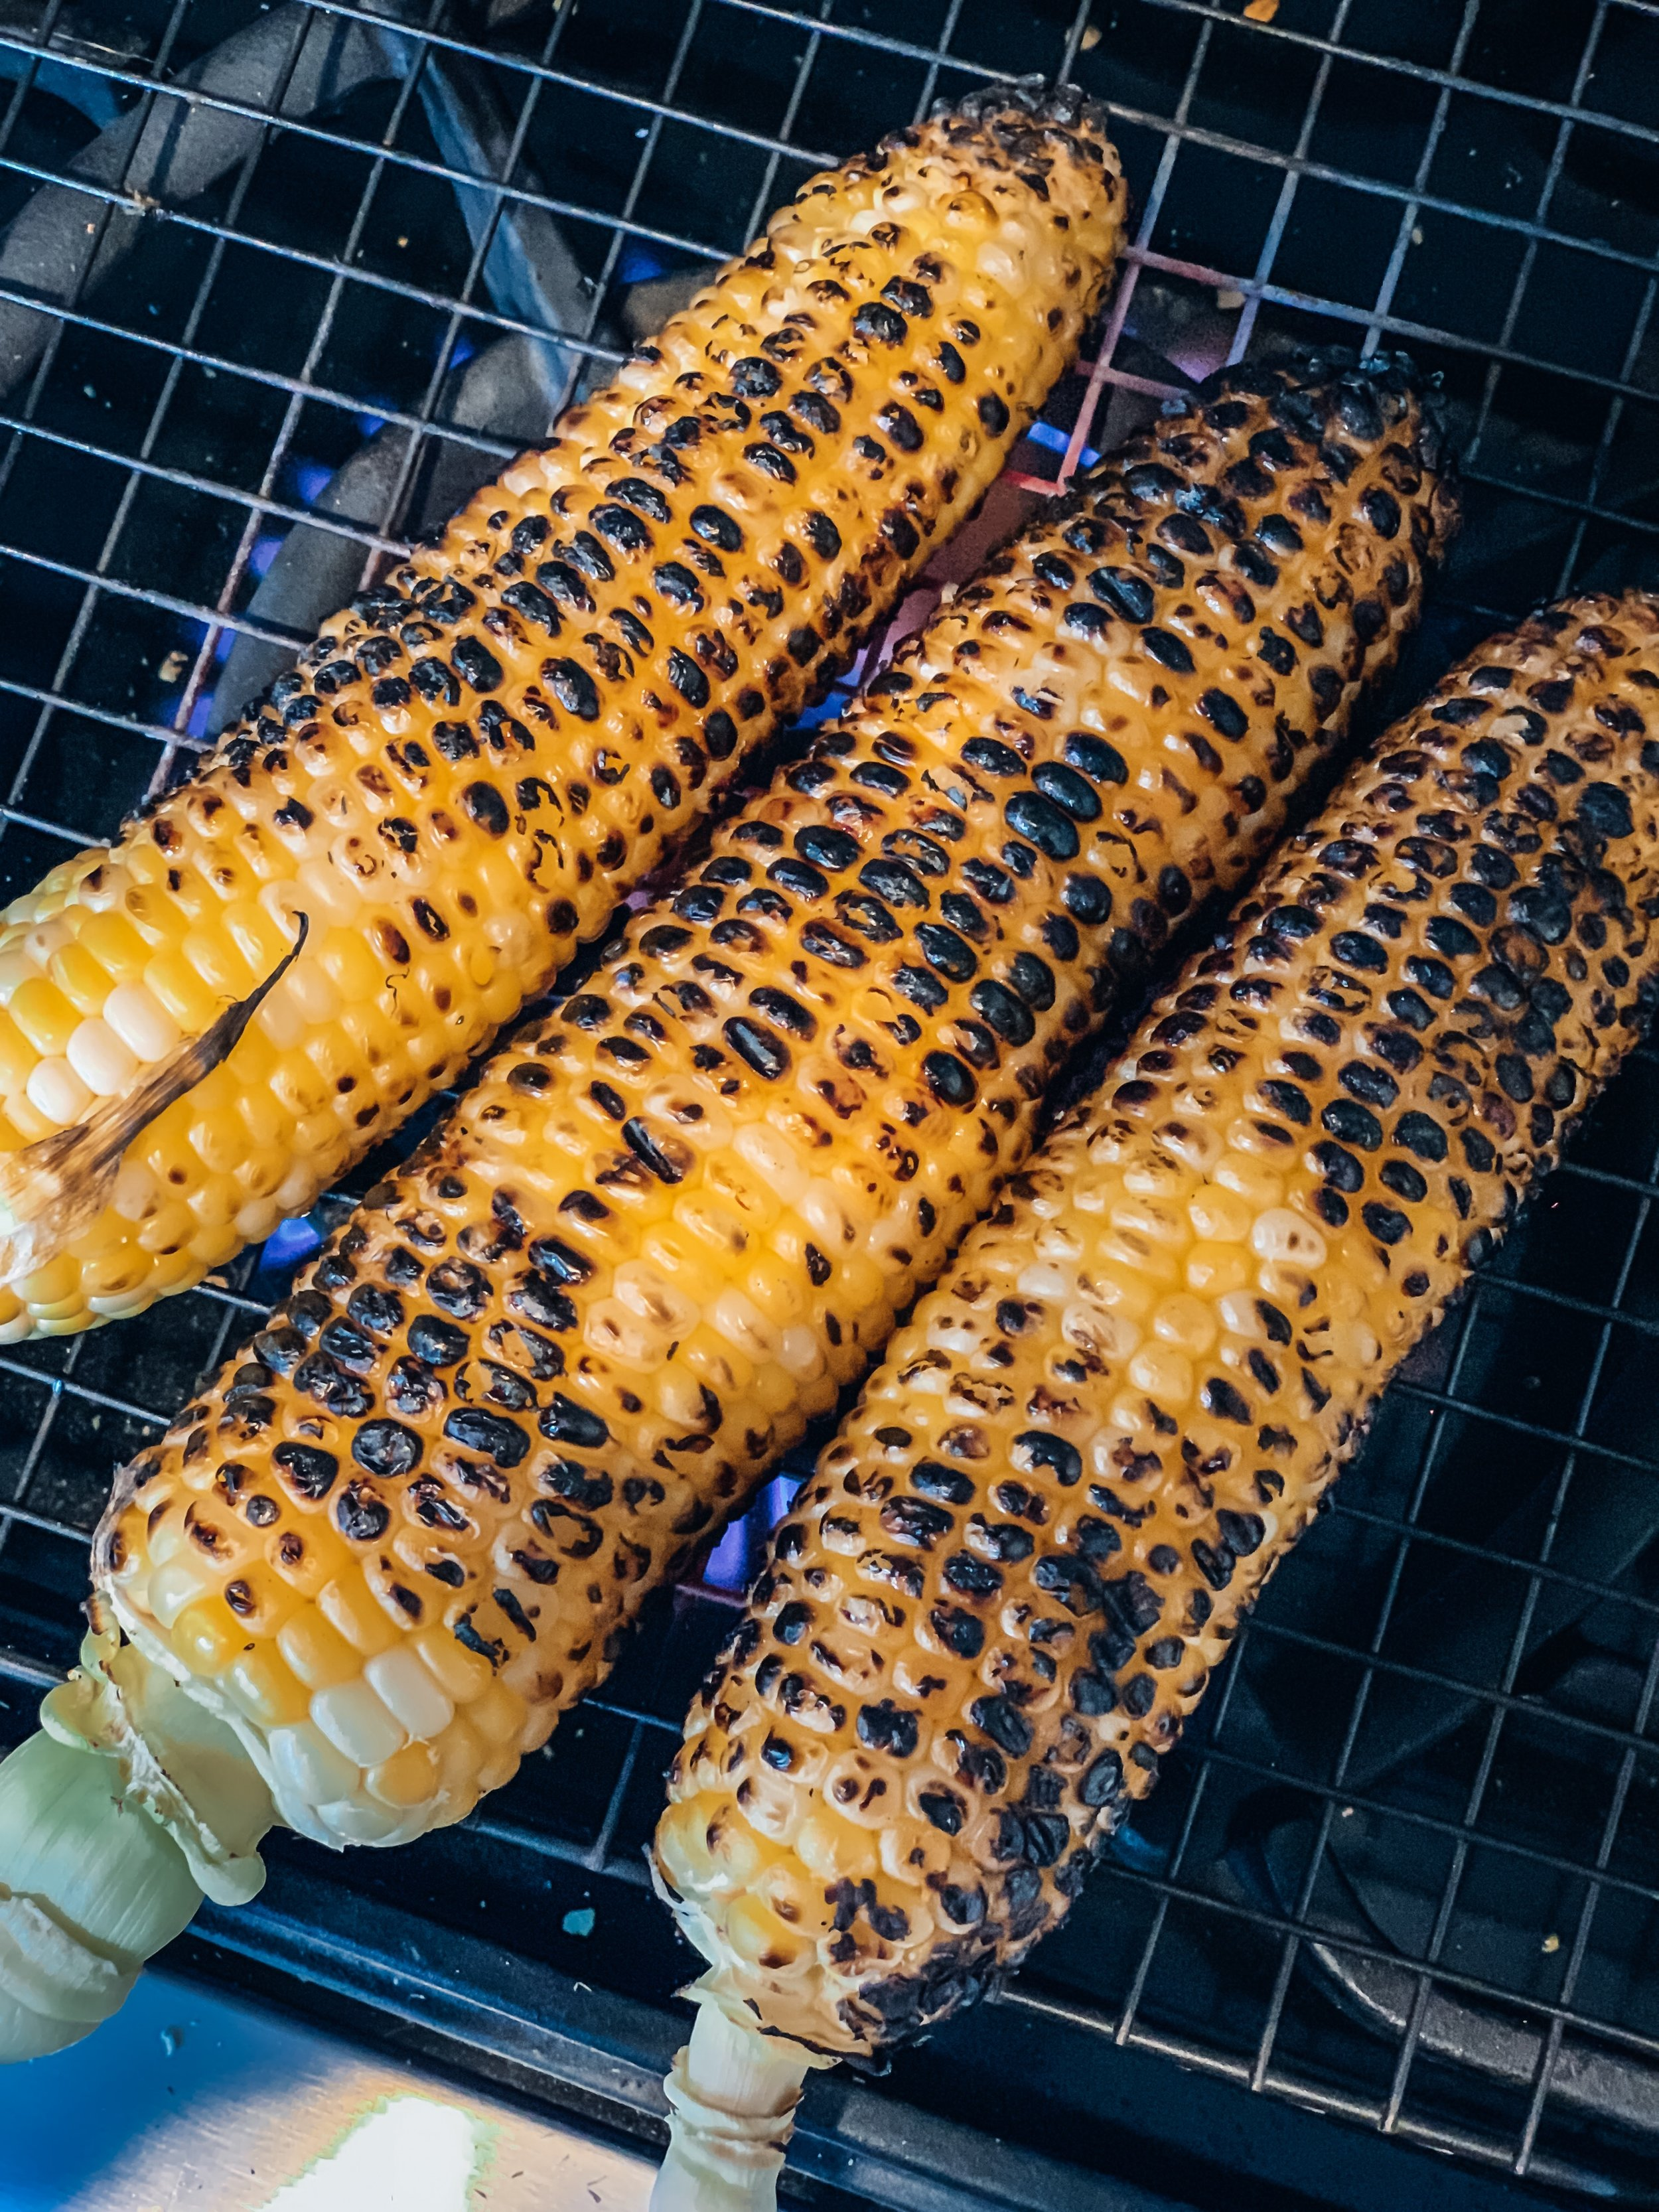 If you don't have a grill, you can make this Indian Style Street corn indoors, as long as you have a gas stove.